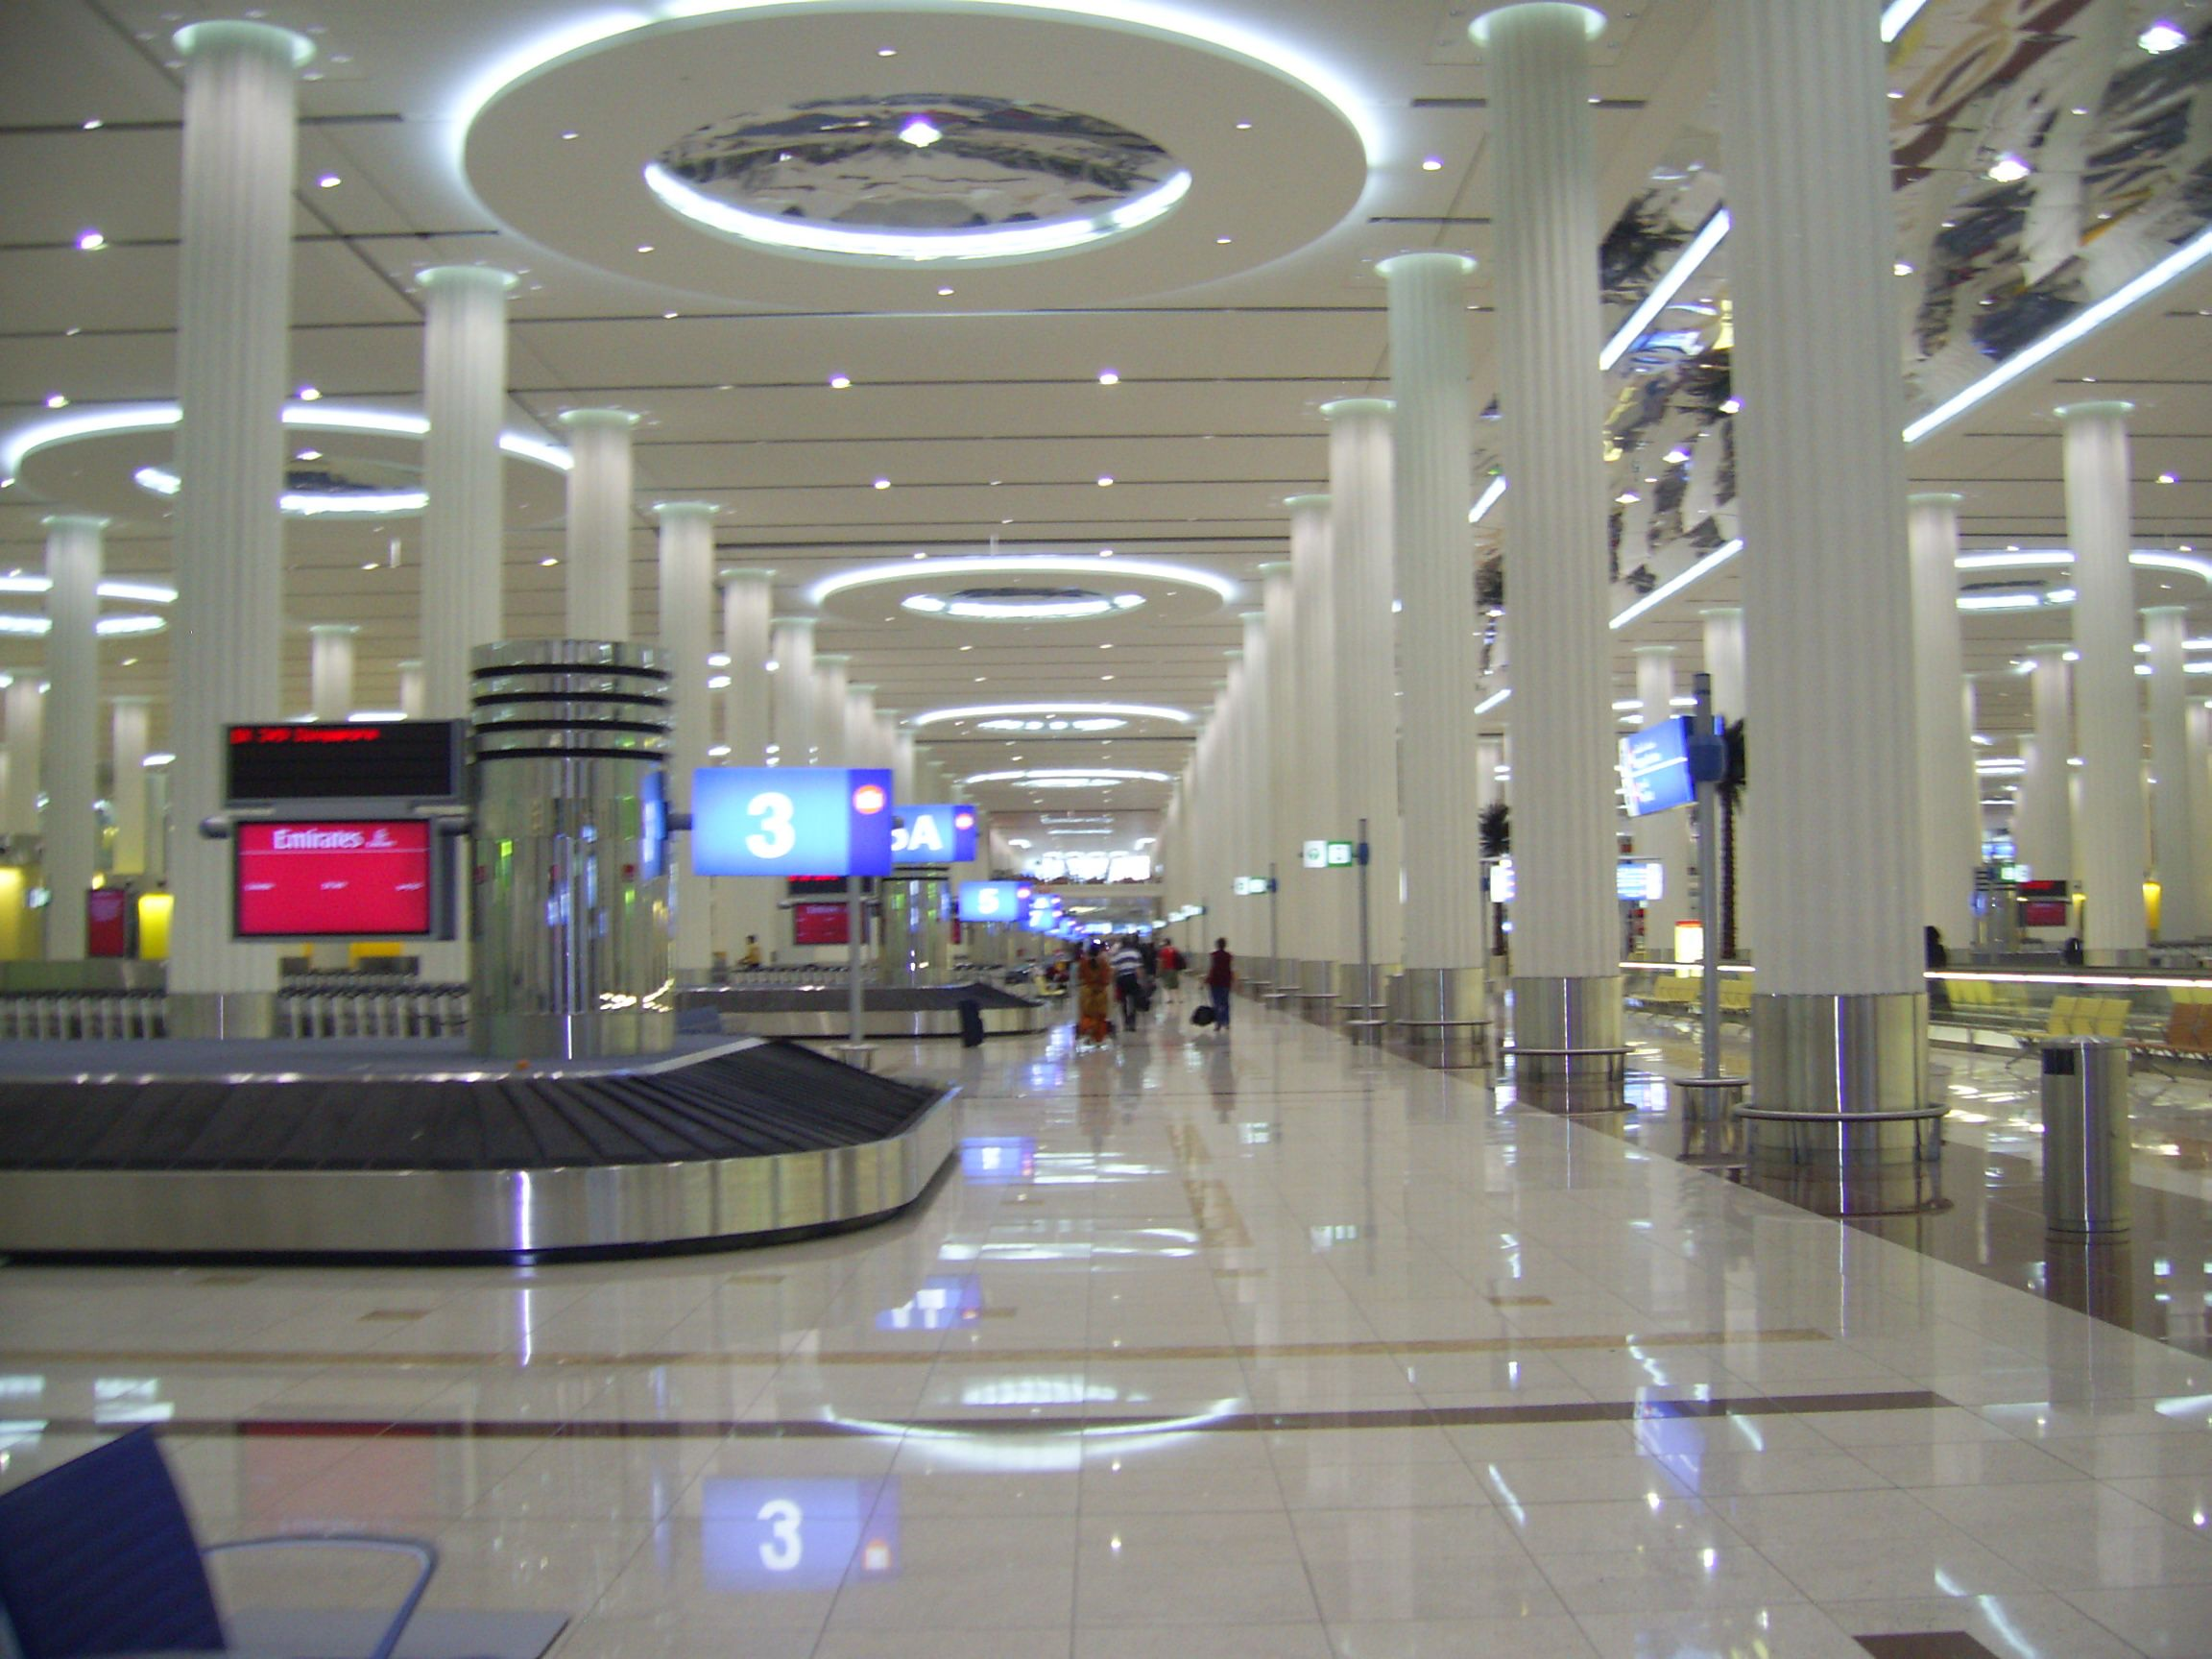 Top    Duty Free Airports Around the World    Flystay The emirate of Dubai is also working to expand its second airport  Al  Maktoum  given the rising passenger traffic  The airport will have the  capacity to